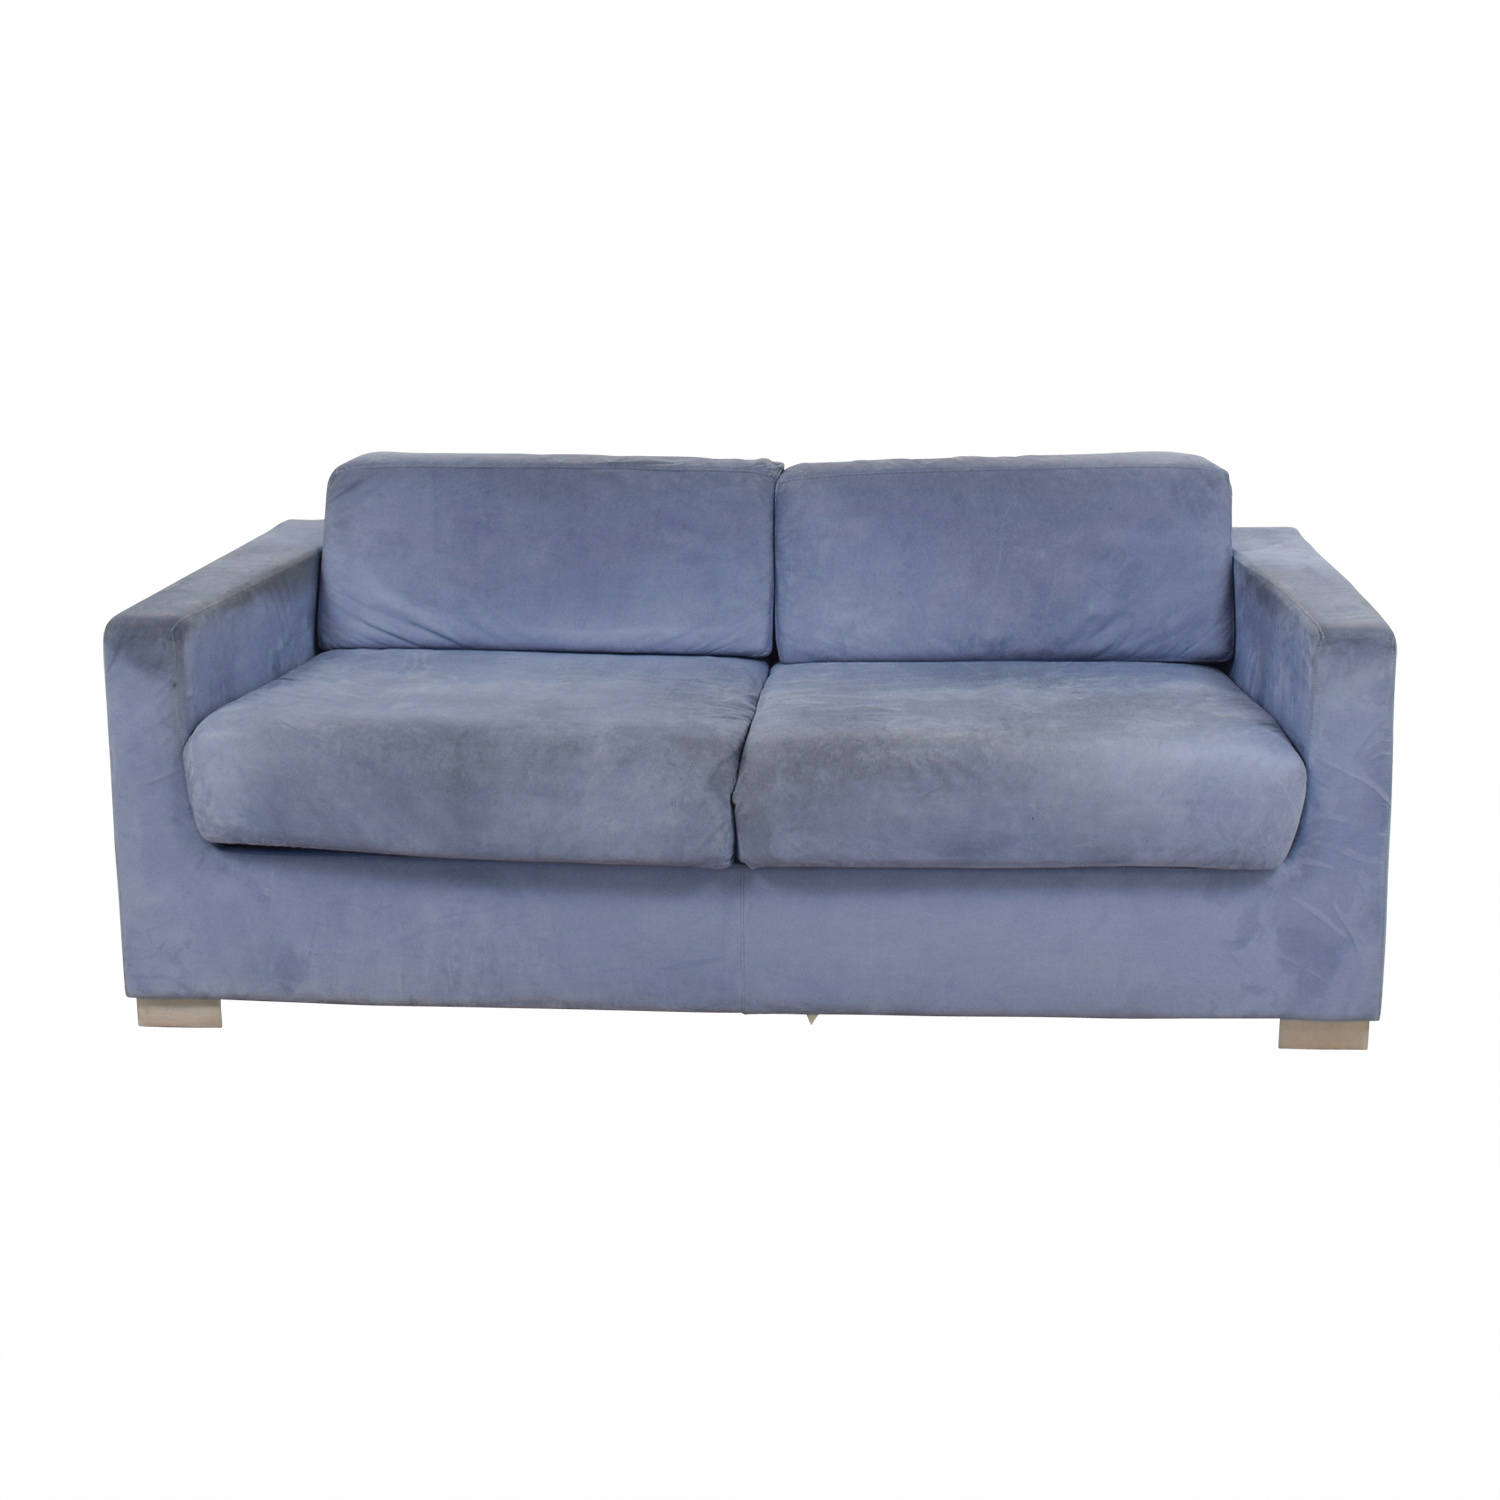 Bernhardt Bernhardt League Lounge Sofa ...